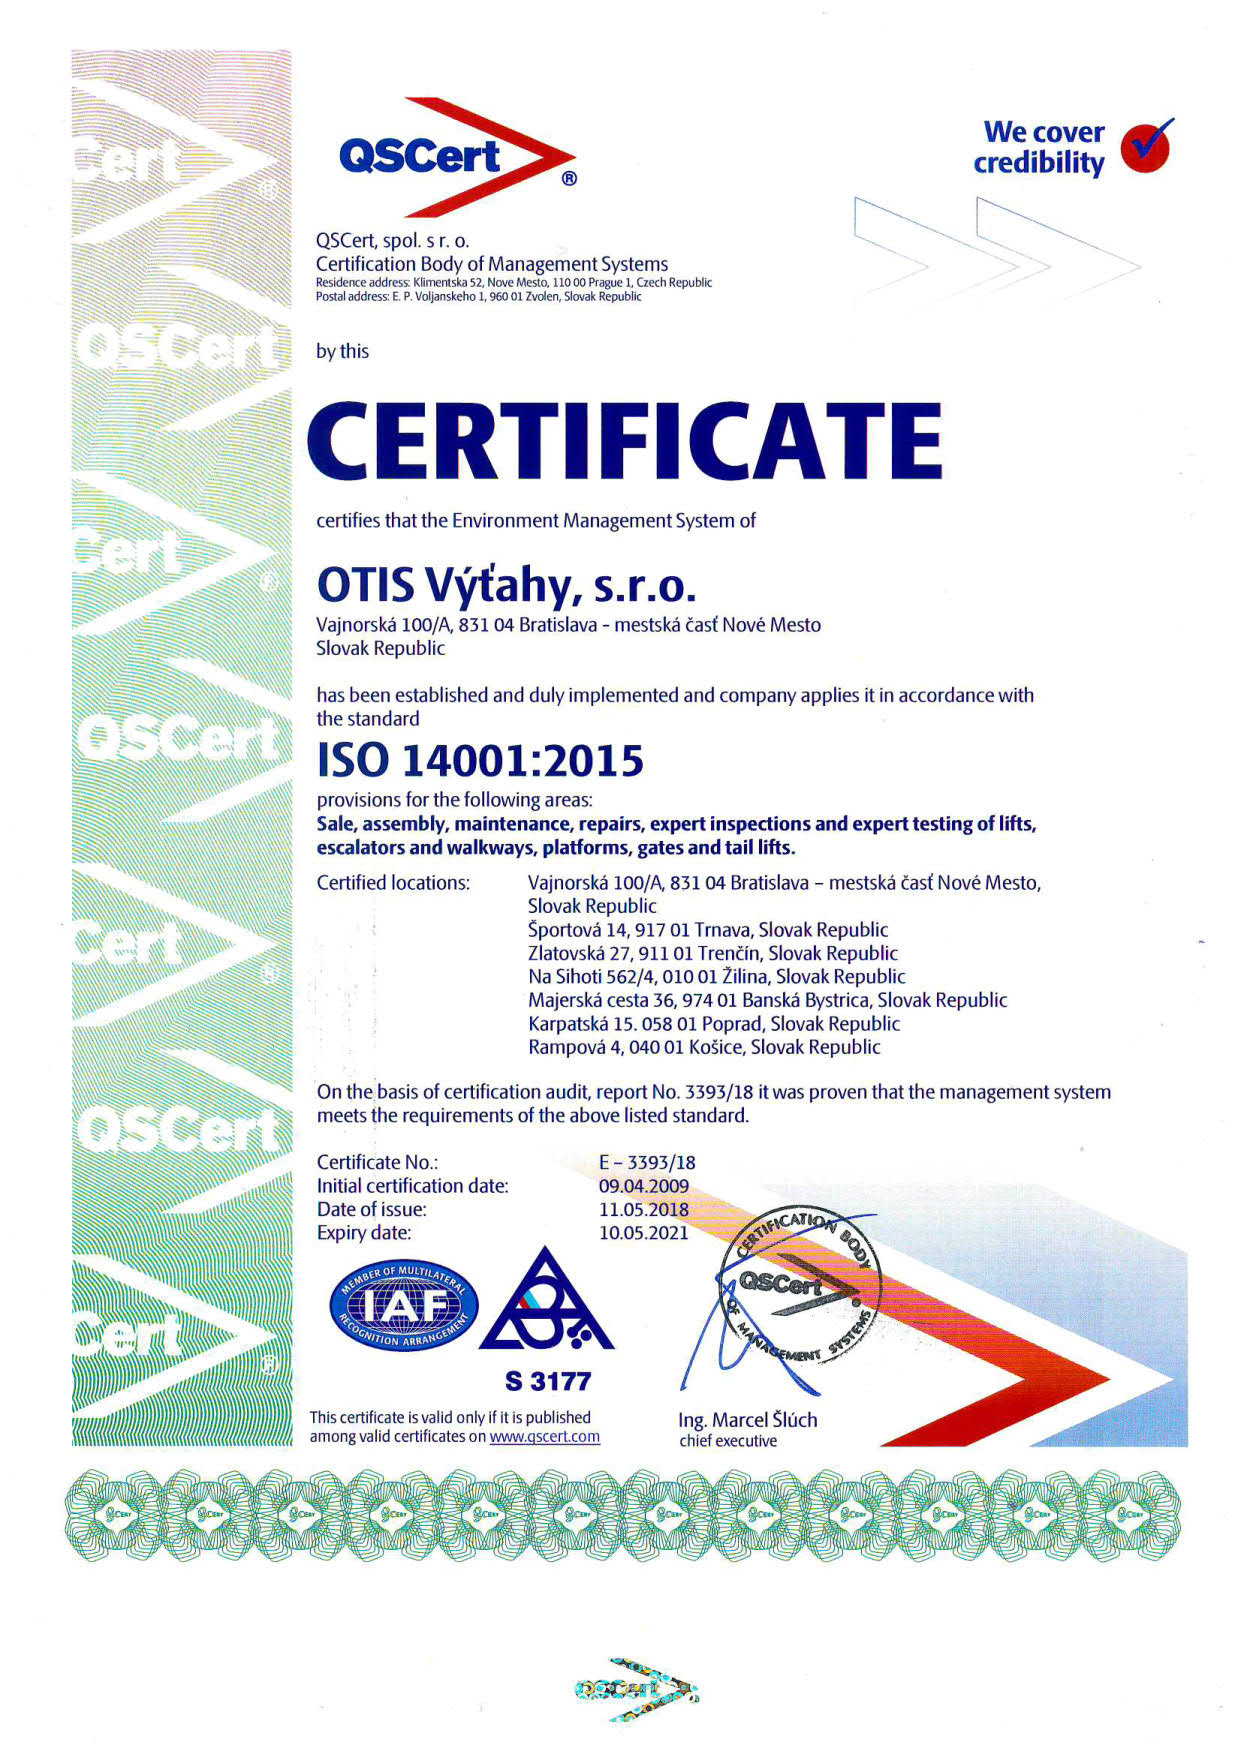 EXAMPLE: ISO 14001 Certificate